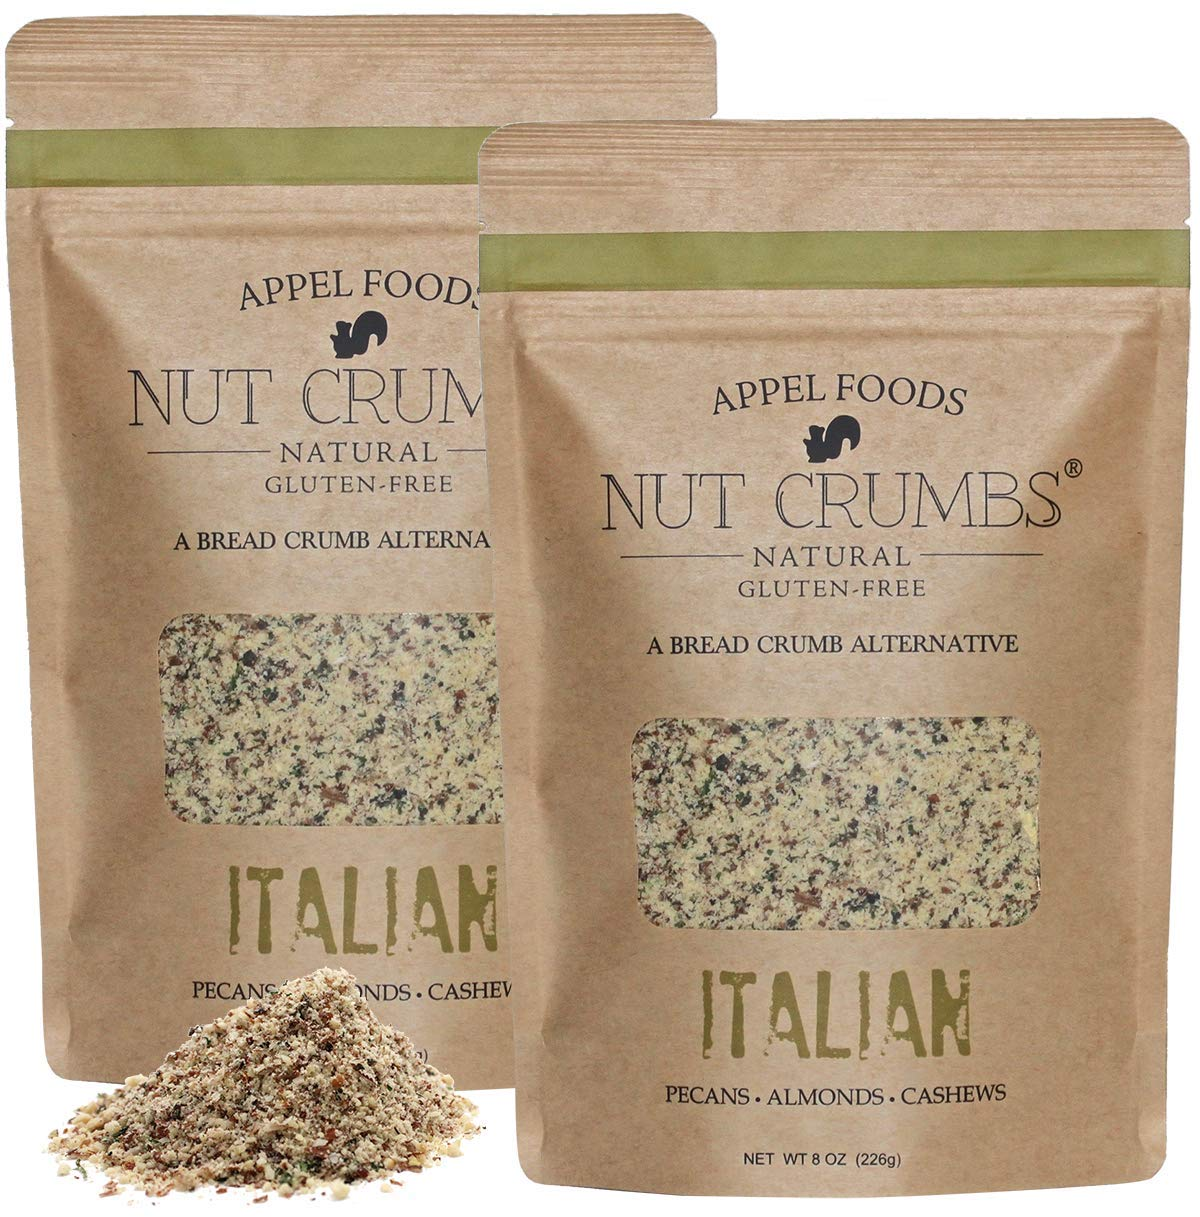 Appel Foods - Nut Crumbs - Bread Crumb Alternative - Gluten Free - Sugar Free - Low Carb - Low Sodium - Raw, Premium Nuts - Italian 2pk by Appel Foods Nut Crumbs Natural Gluten-Free A Bread Crumb Alternative